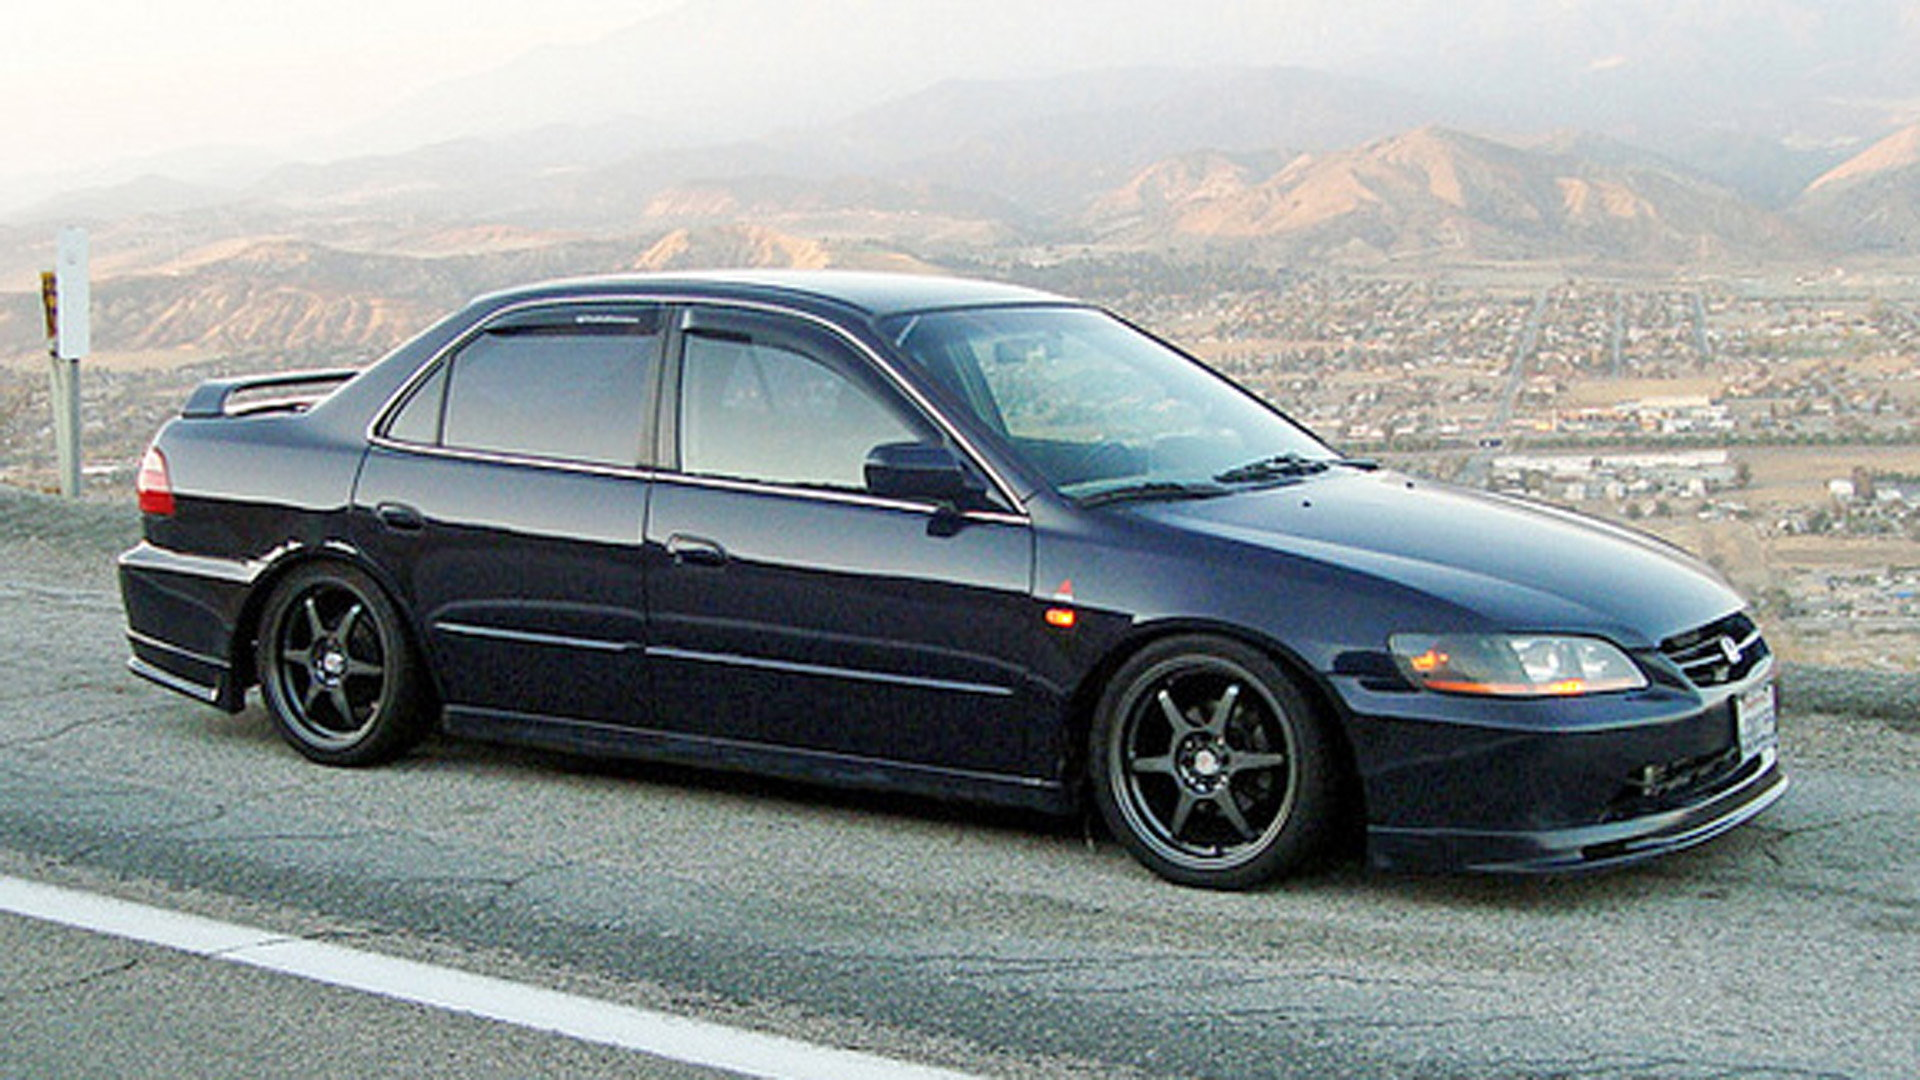 Honda Accord Aftermarket Modifications Honda Tech